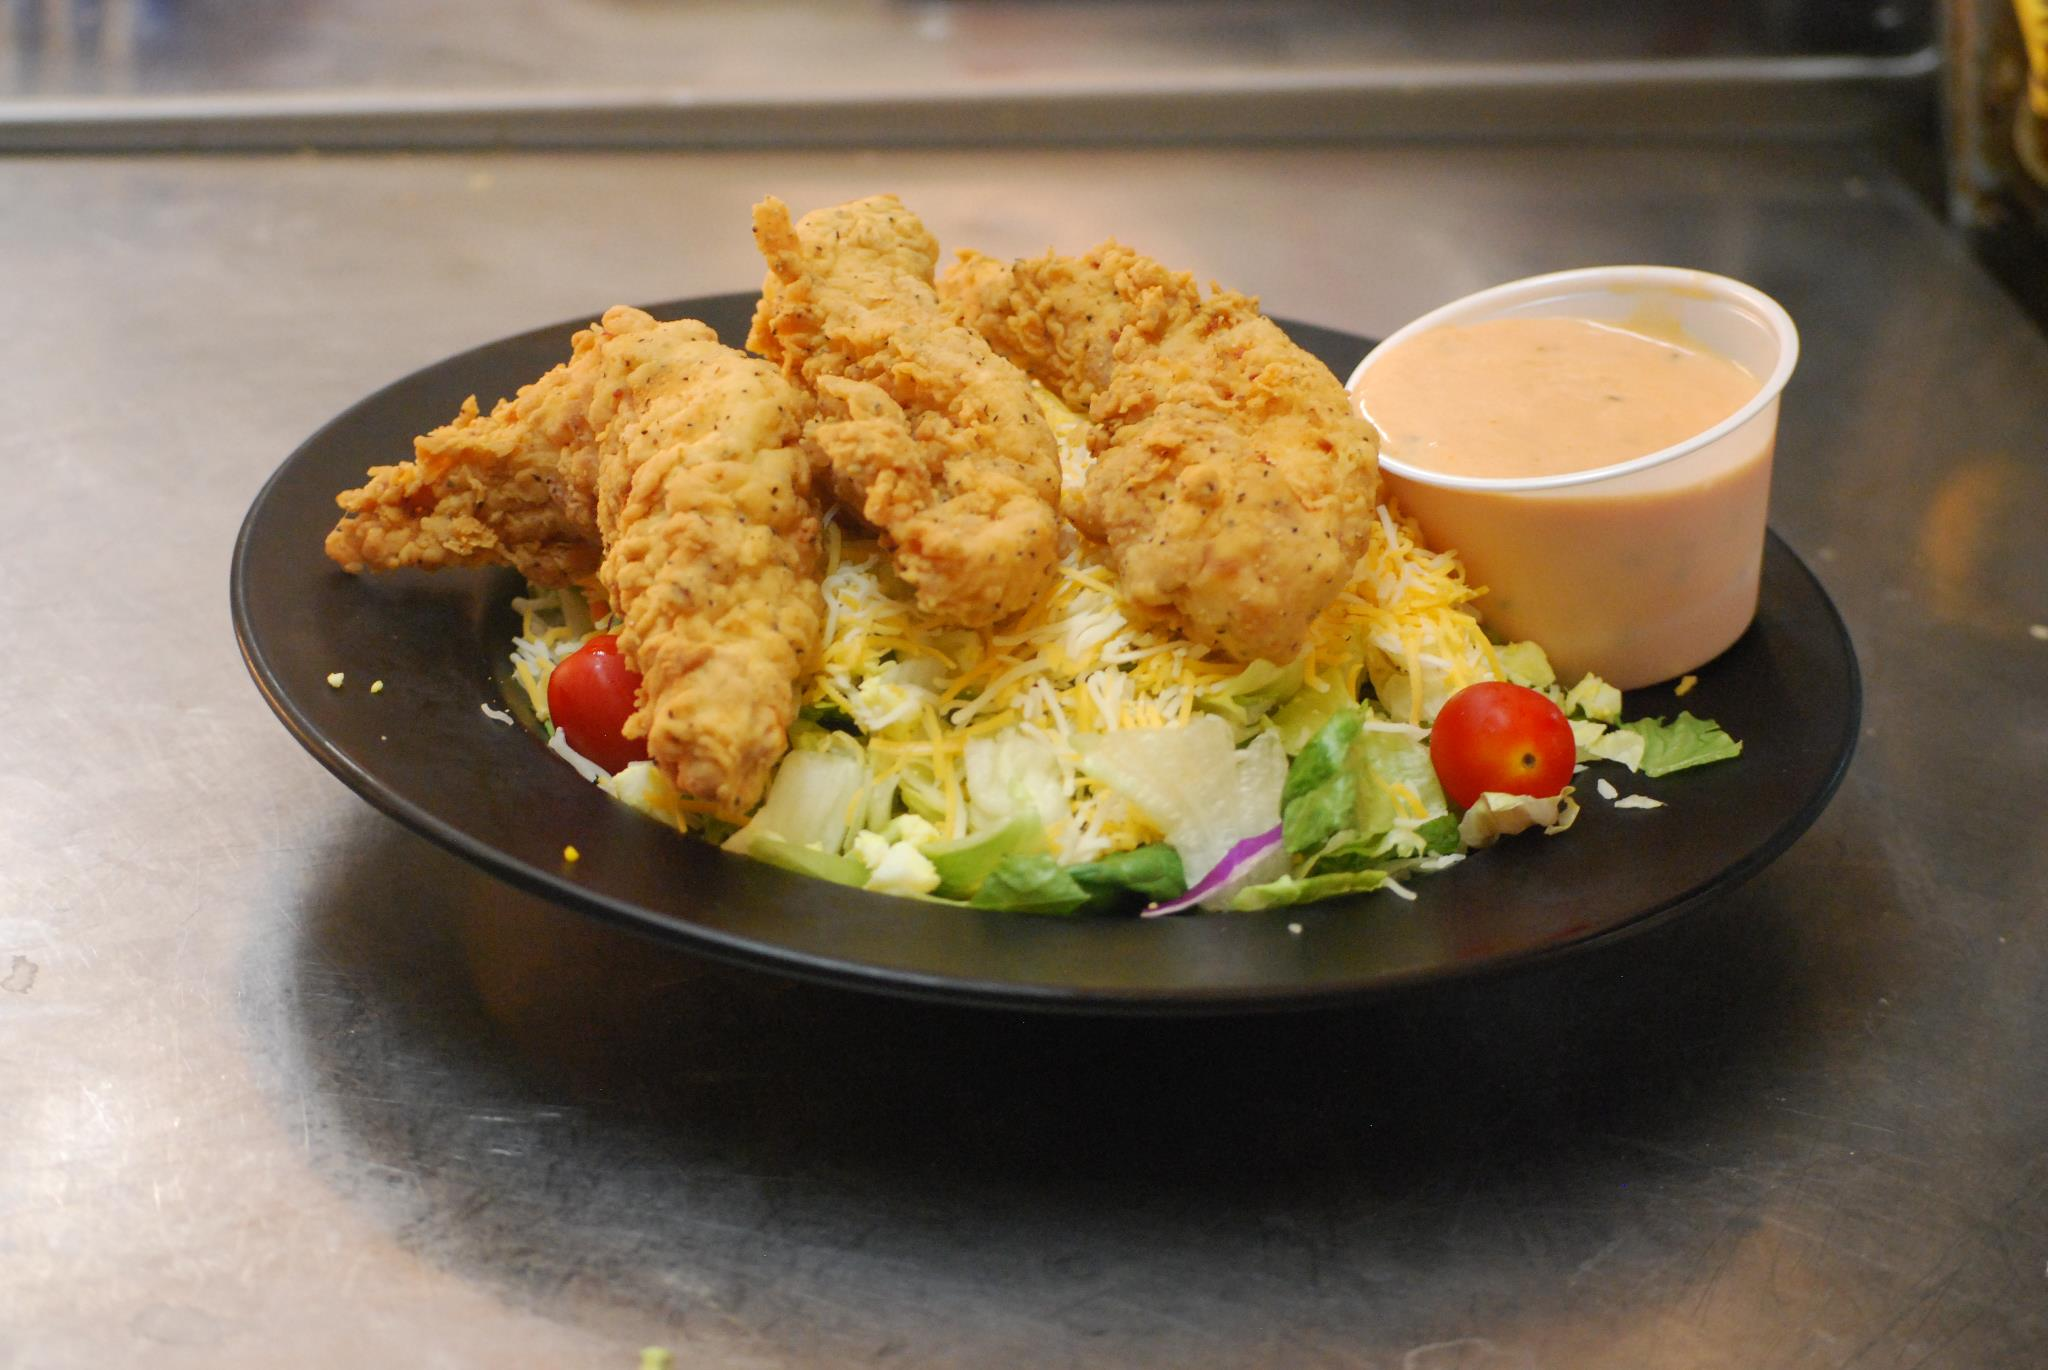 Crispy chicken tenders with dipping sauce placed on top of a salad in a bowl